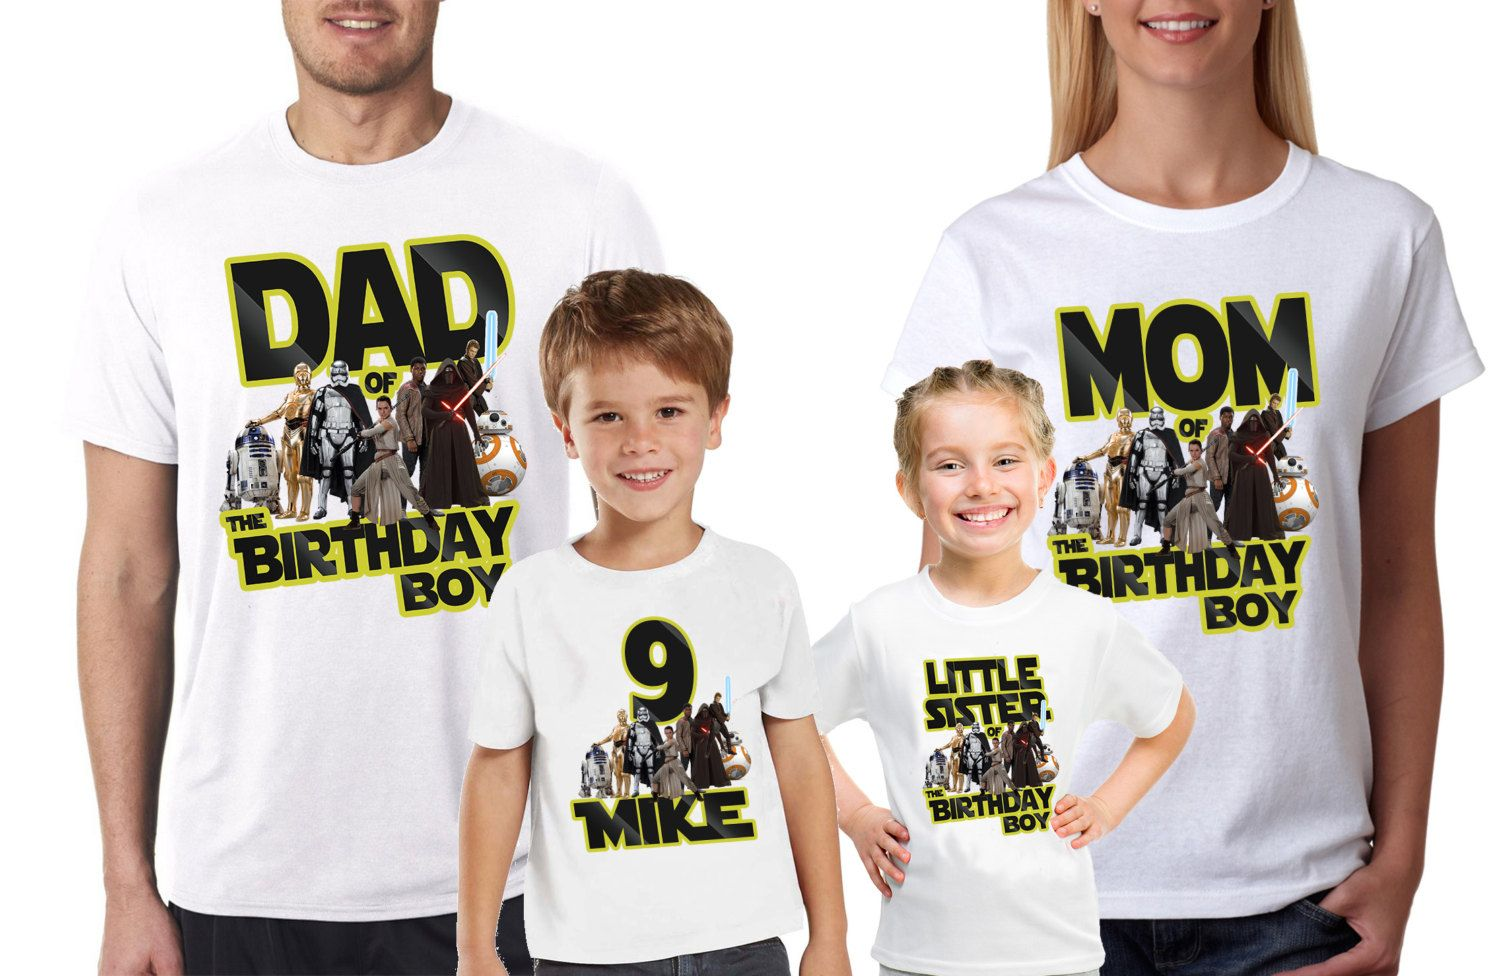 Star Wars Custom Birthday ShirtBoys Girls ShirtBirthday Party T Shirts Now And For Parents Fast Shipping By DatShirts On Etsy